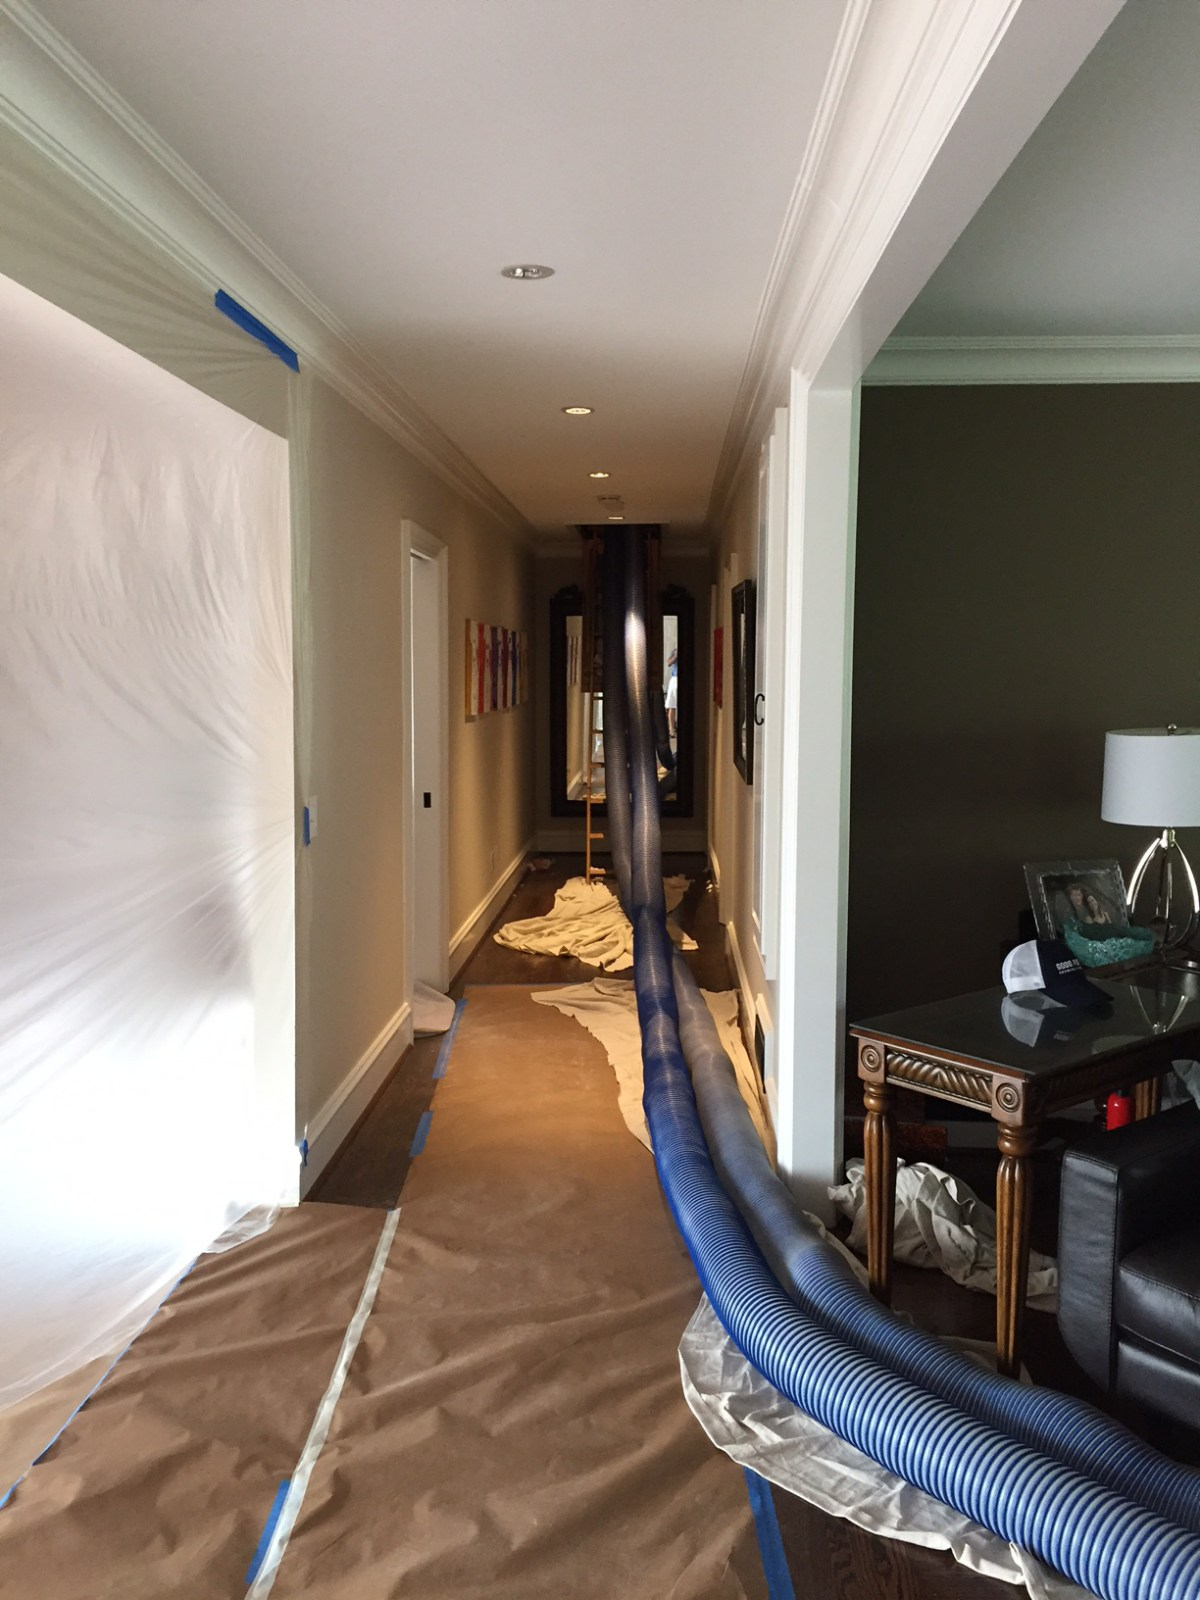 North Atlanta home having insulation added to attic to improve comfort and efficiency.